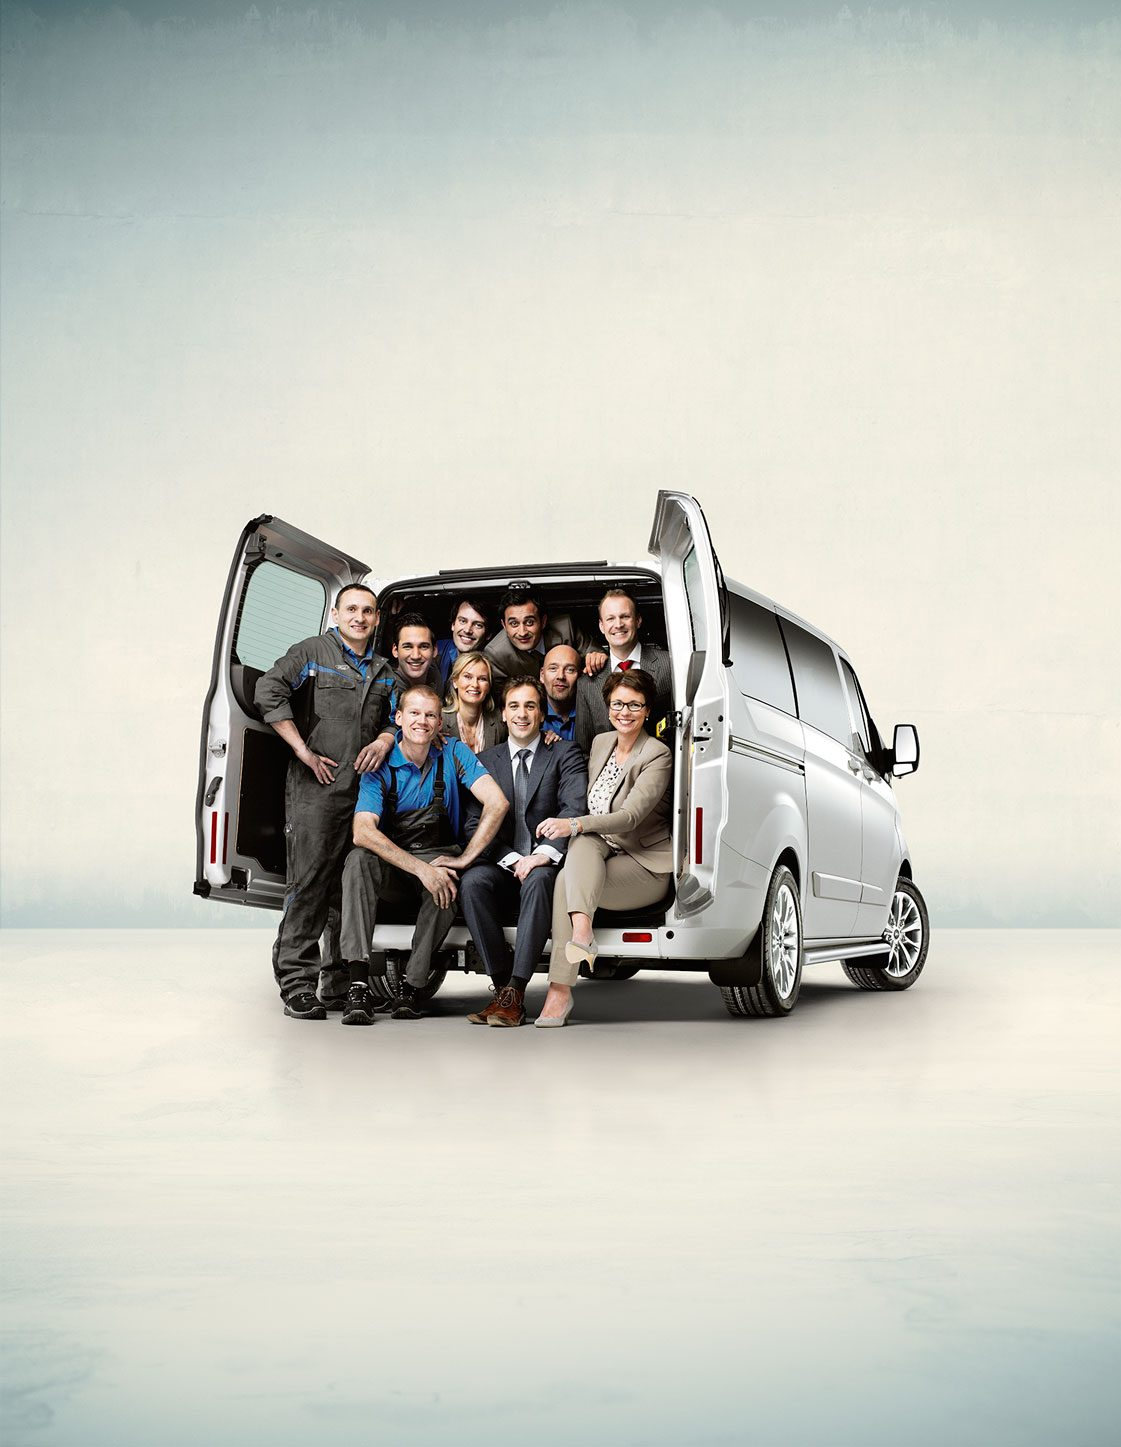 Ford; transit; team; people; sales; mechanics; grey; car; studio; Amsterdam; The Netherlands; booth; trunk; loading; cargo; luguage; verkoop; grijs; monteurs; bestel; auto; laden; laadruimte, van, bestelbus